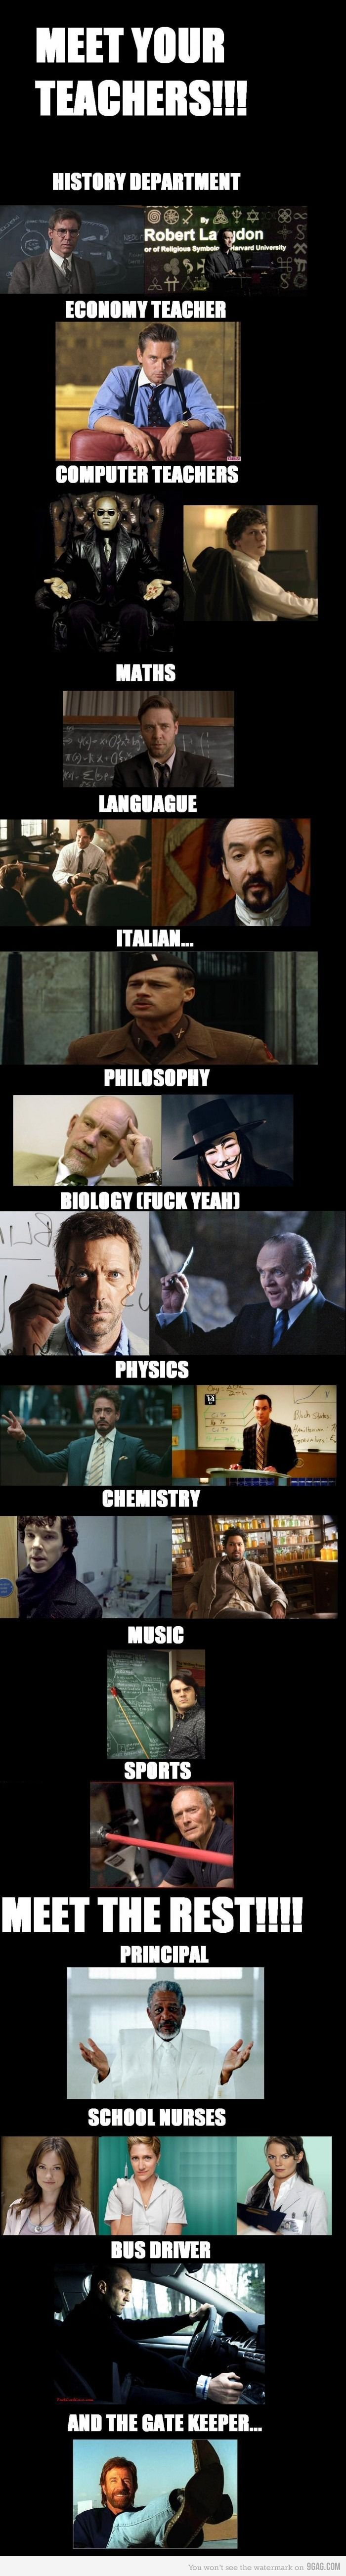 The School of AWESOME. Where do I enroll?! -------- 10th doctor needs to be physics teacher and rose be dinner lady